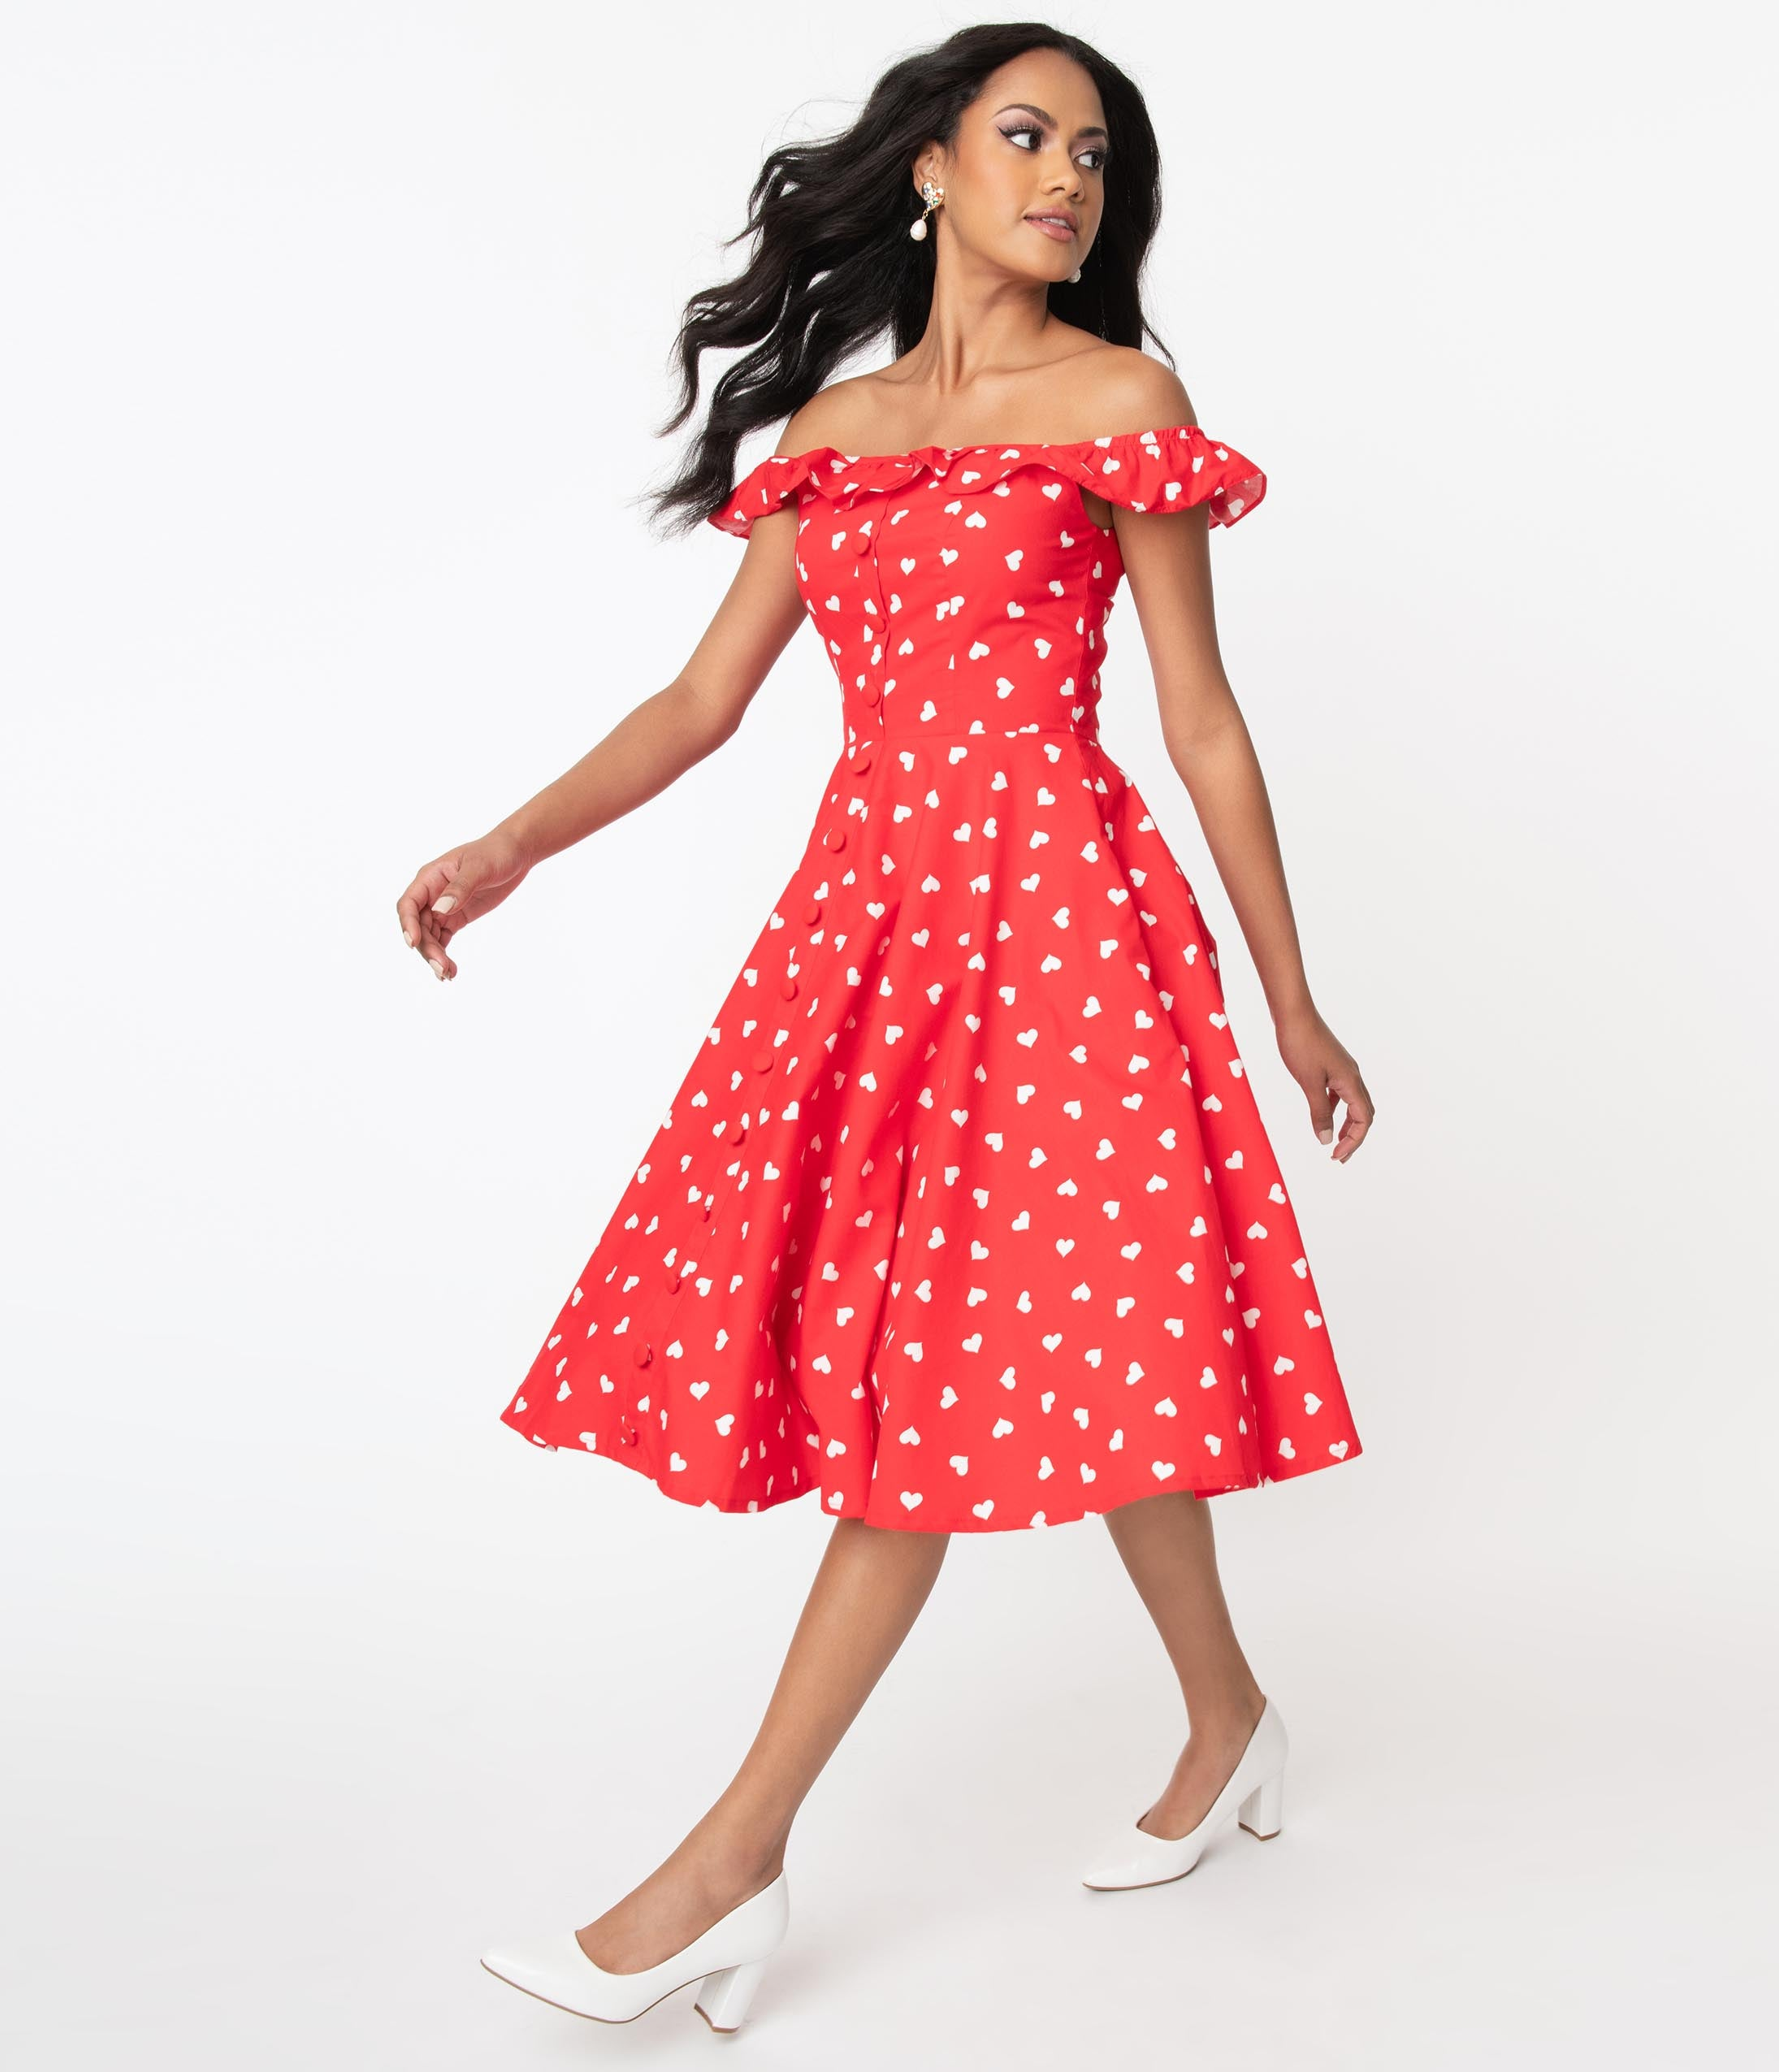 1950s Plus Size Dresses, Swing Dresses Red  White Heart Print Barbara Swing Dress $78.00 AT vintagedancer.com